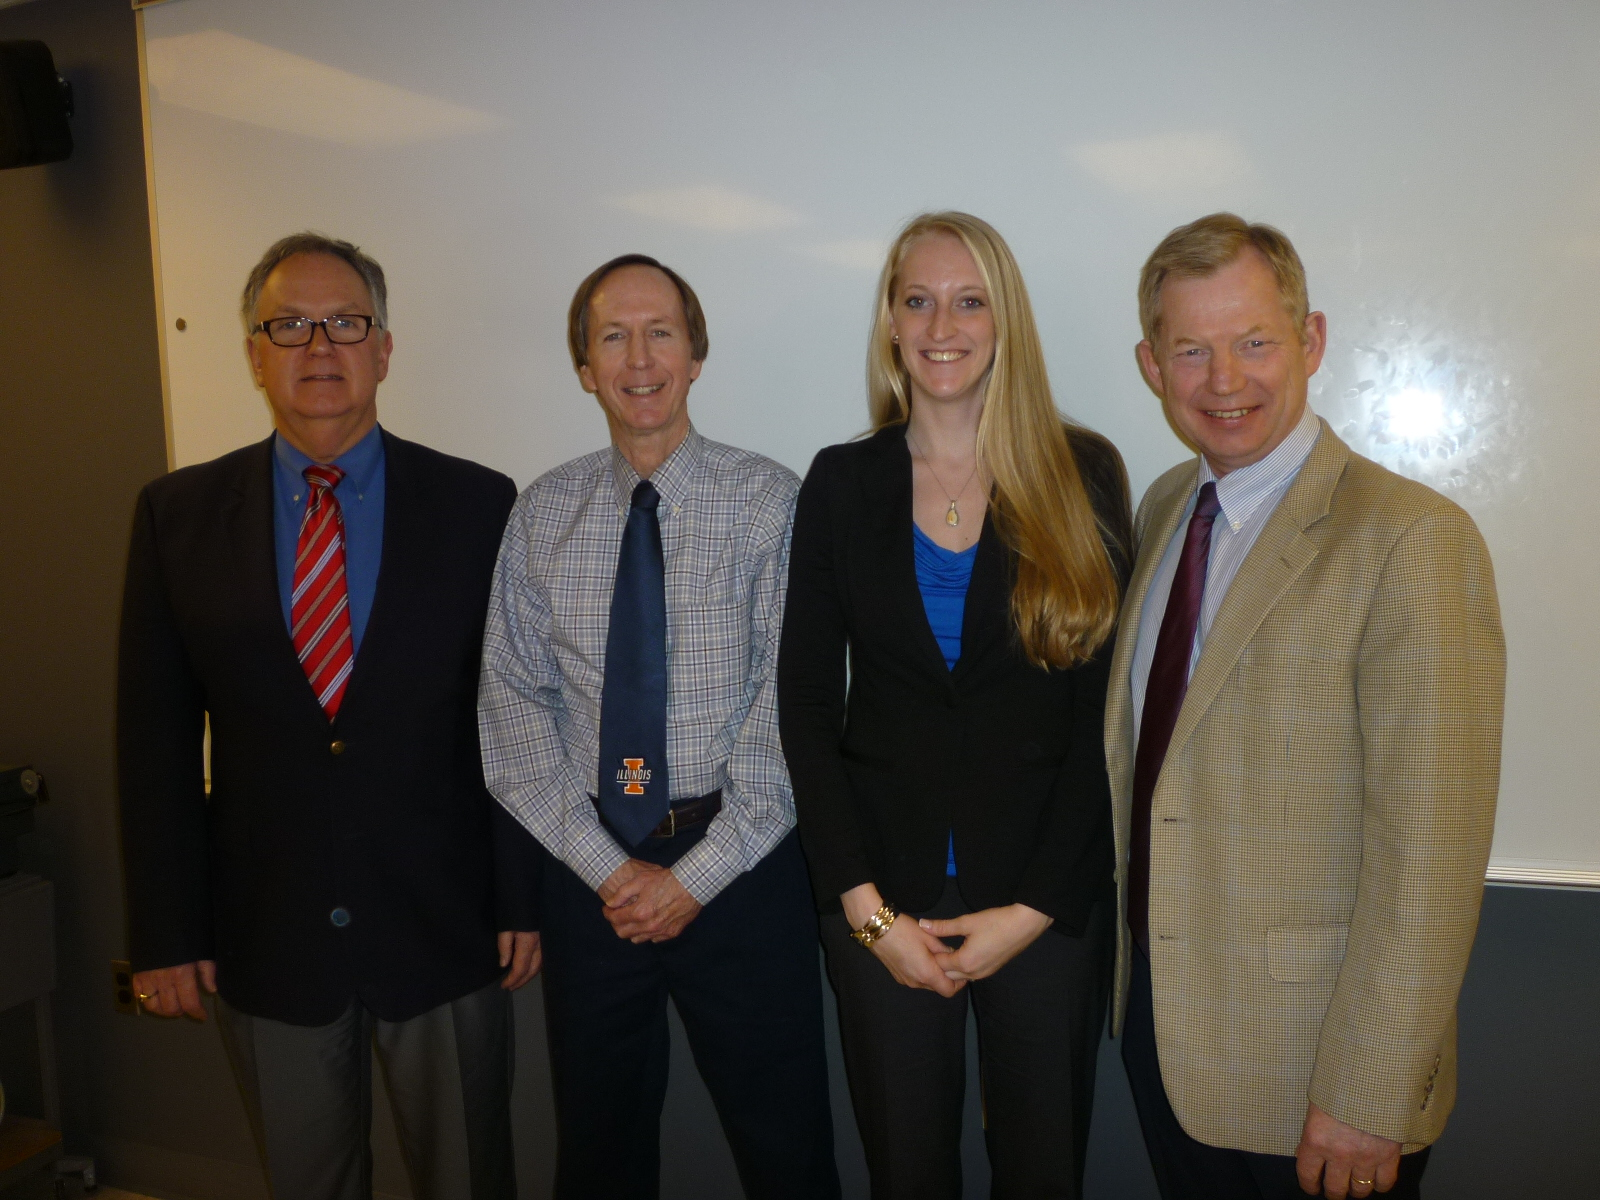 Chelsie with her Master's thesis committee after her successful defense on April 10.